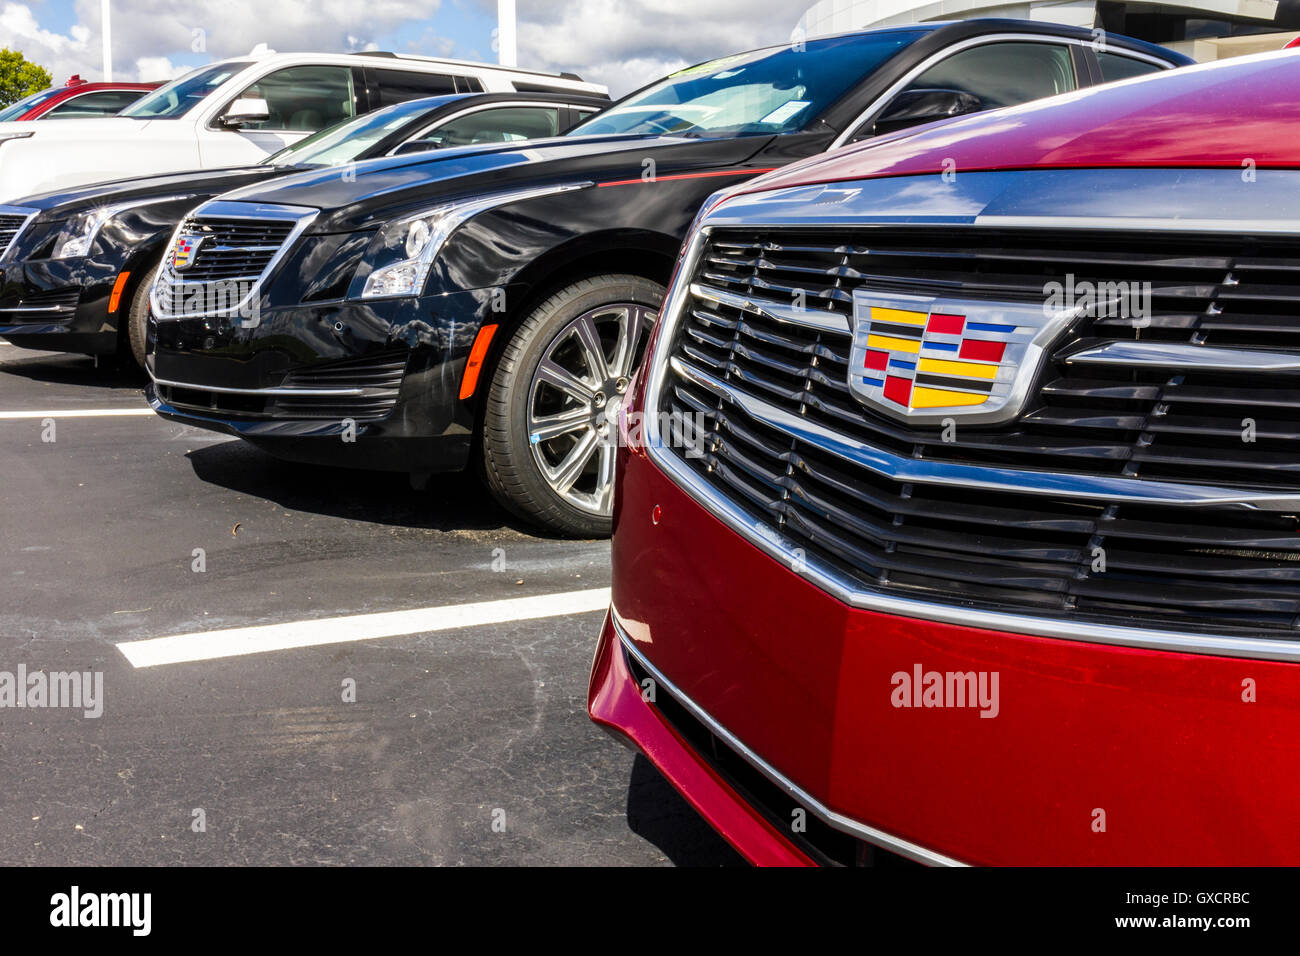 Indianapolis - Circa September 2016: Cadillac Automobile Dealership. Cadillac is the Luxury Division of General - Stock Image